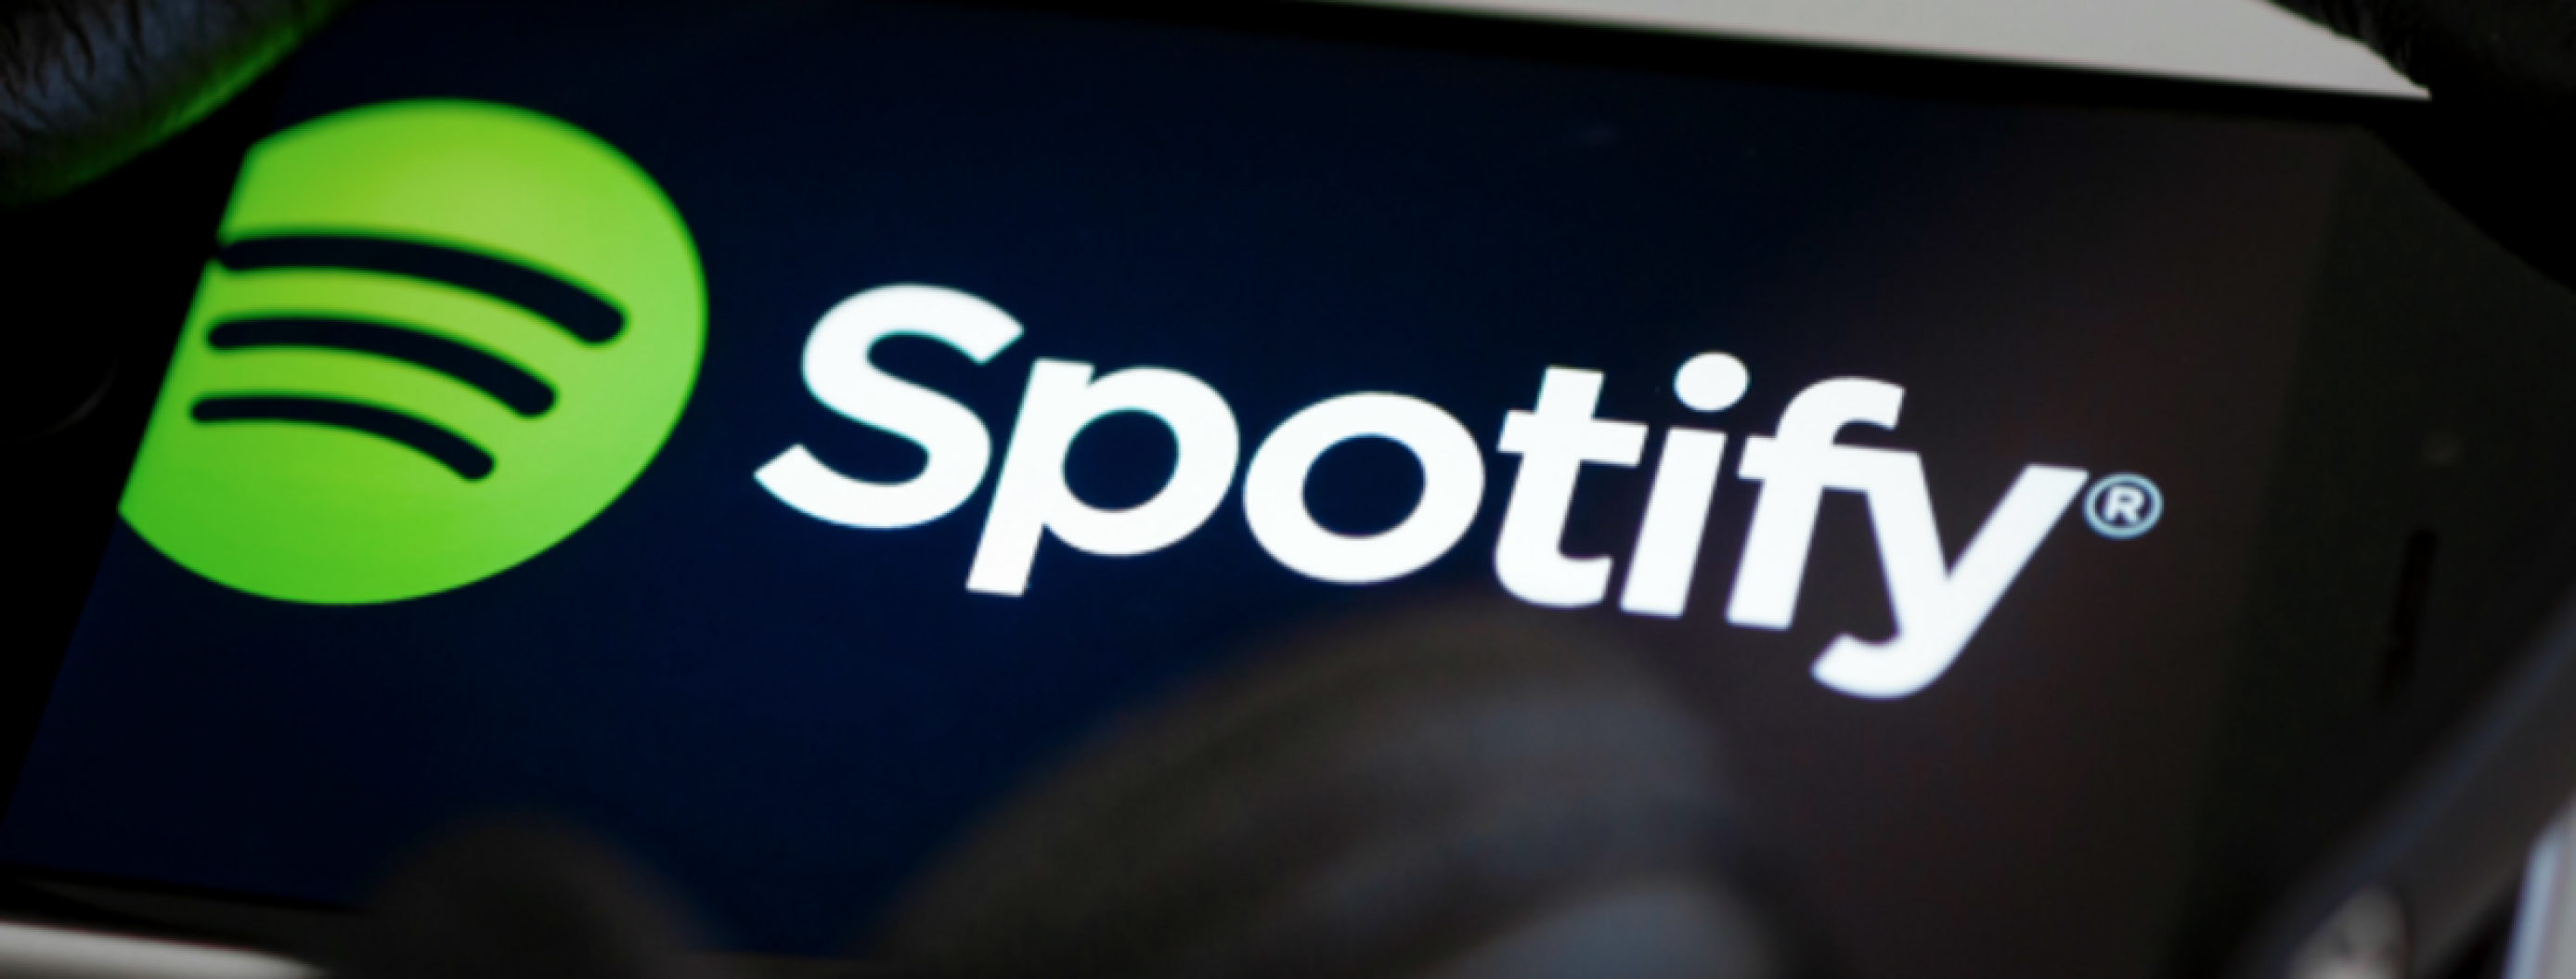 Spotify Will Reveal Big Mobile App Changes Next Week